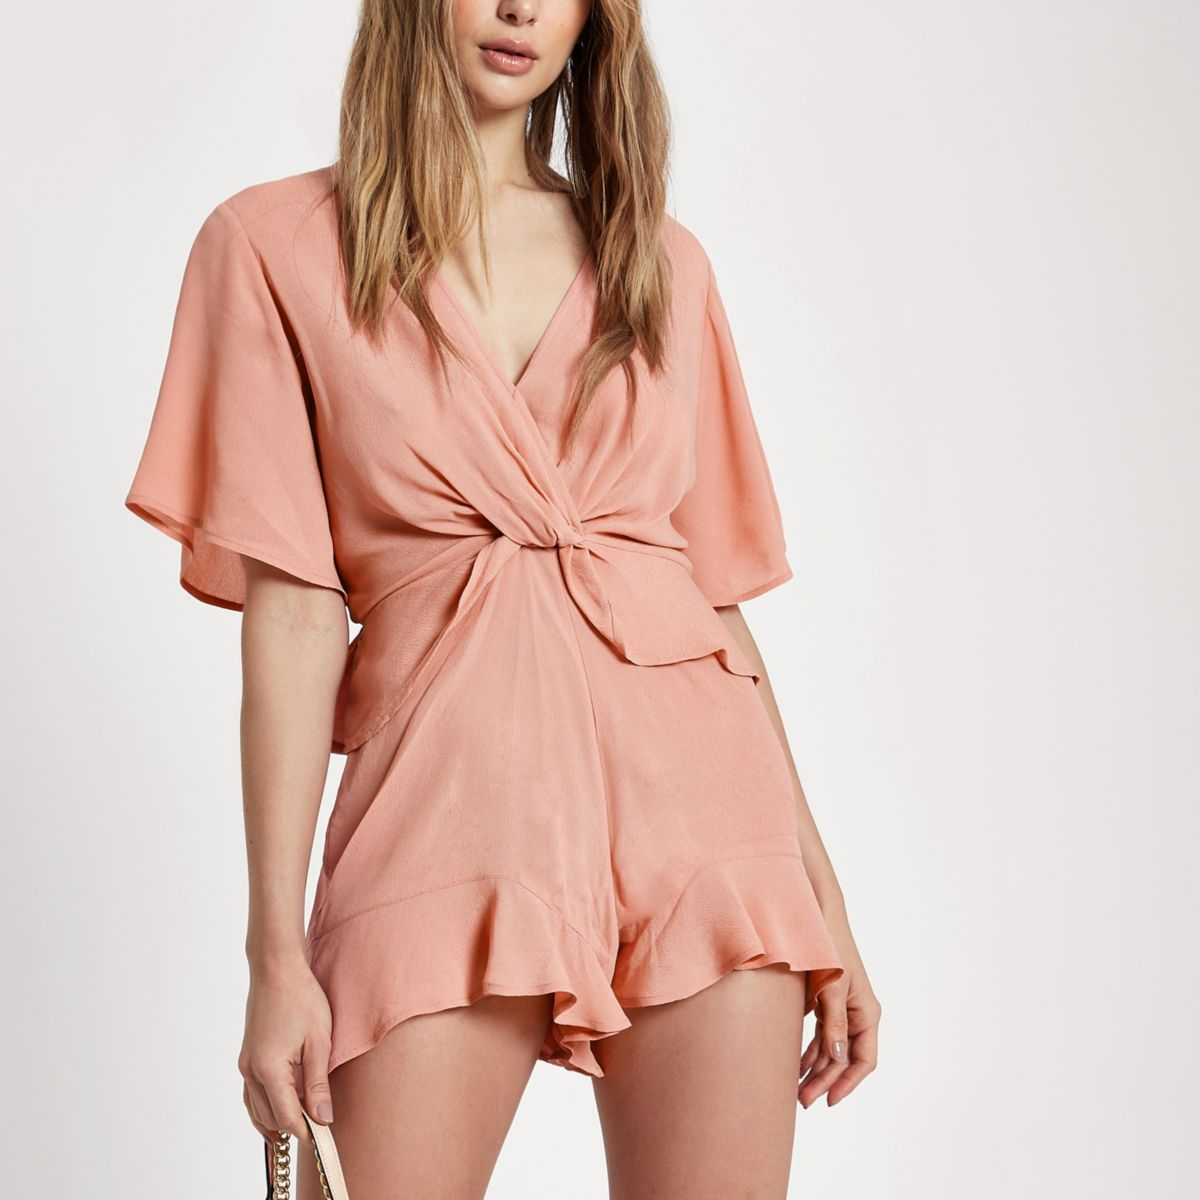 Pink knot front romper